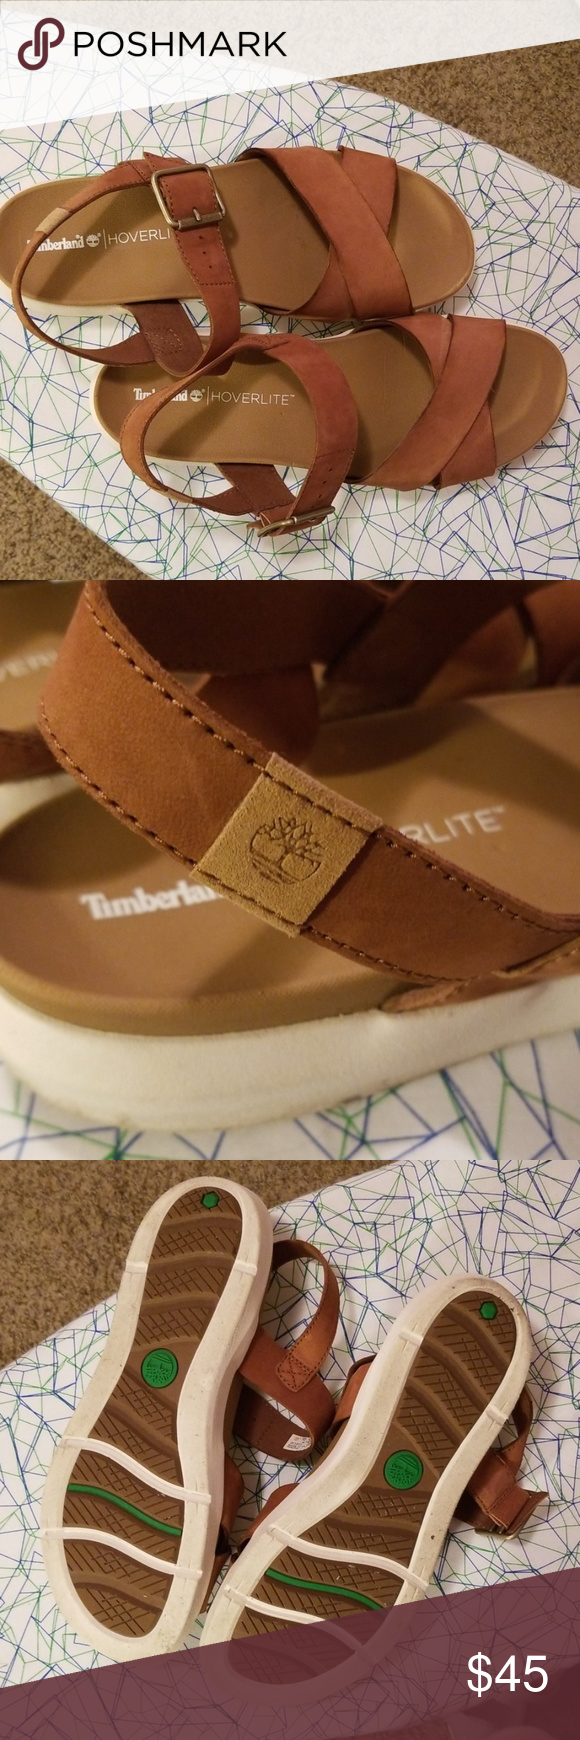 Timberland Hoverlite Sandals Worn a few times, my footbed is